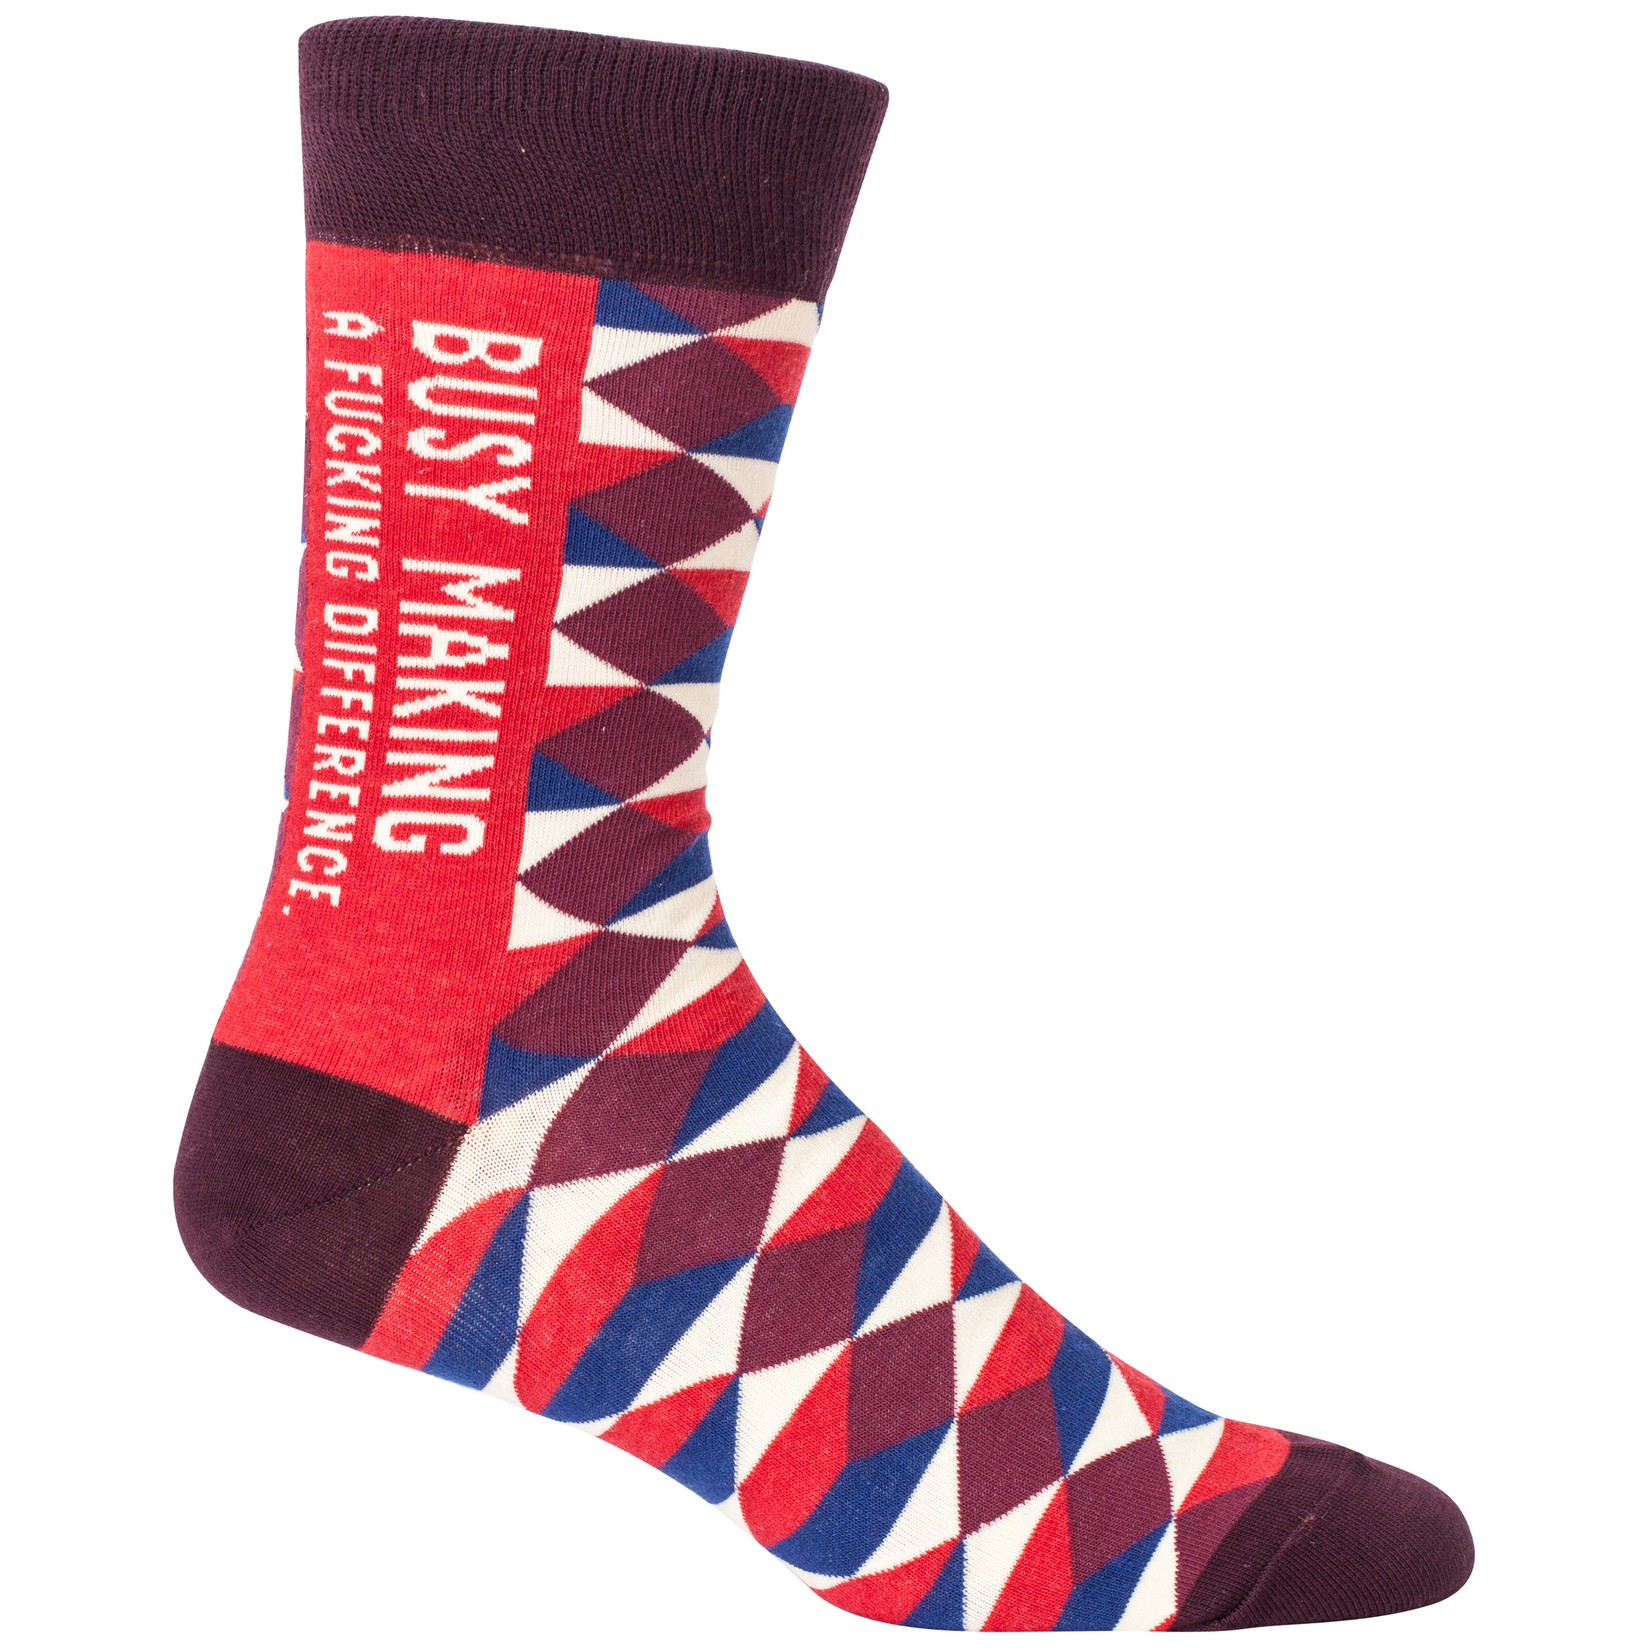 Blue Q Busy Making A F*cking Difference M - Crew Socks